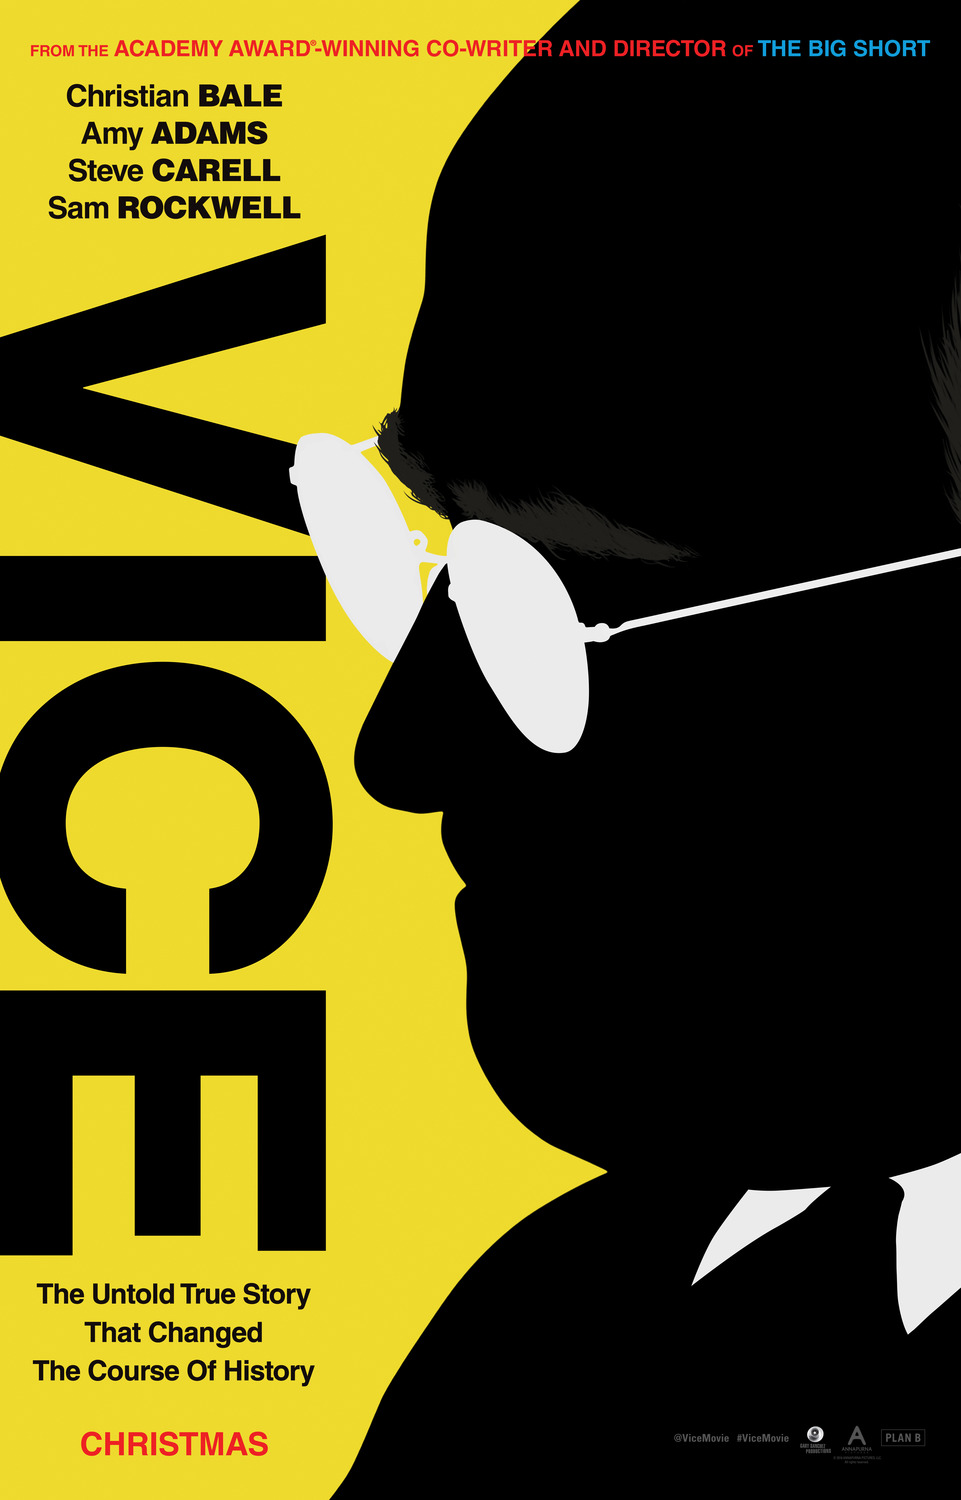 Vice was recently nominated for six Golden Globe Awards. Christian Bale took home the award for Actor in a Musical or Comedy Film.